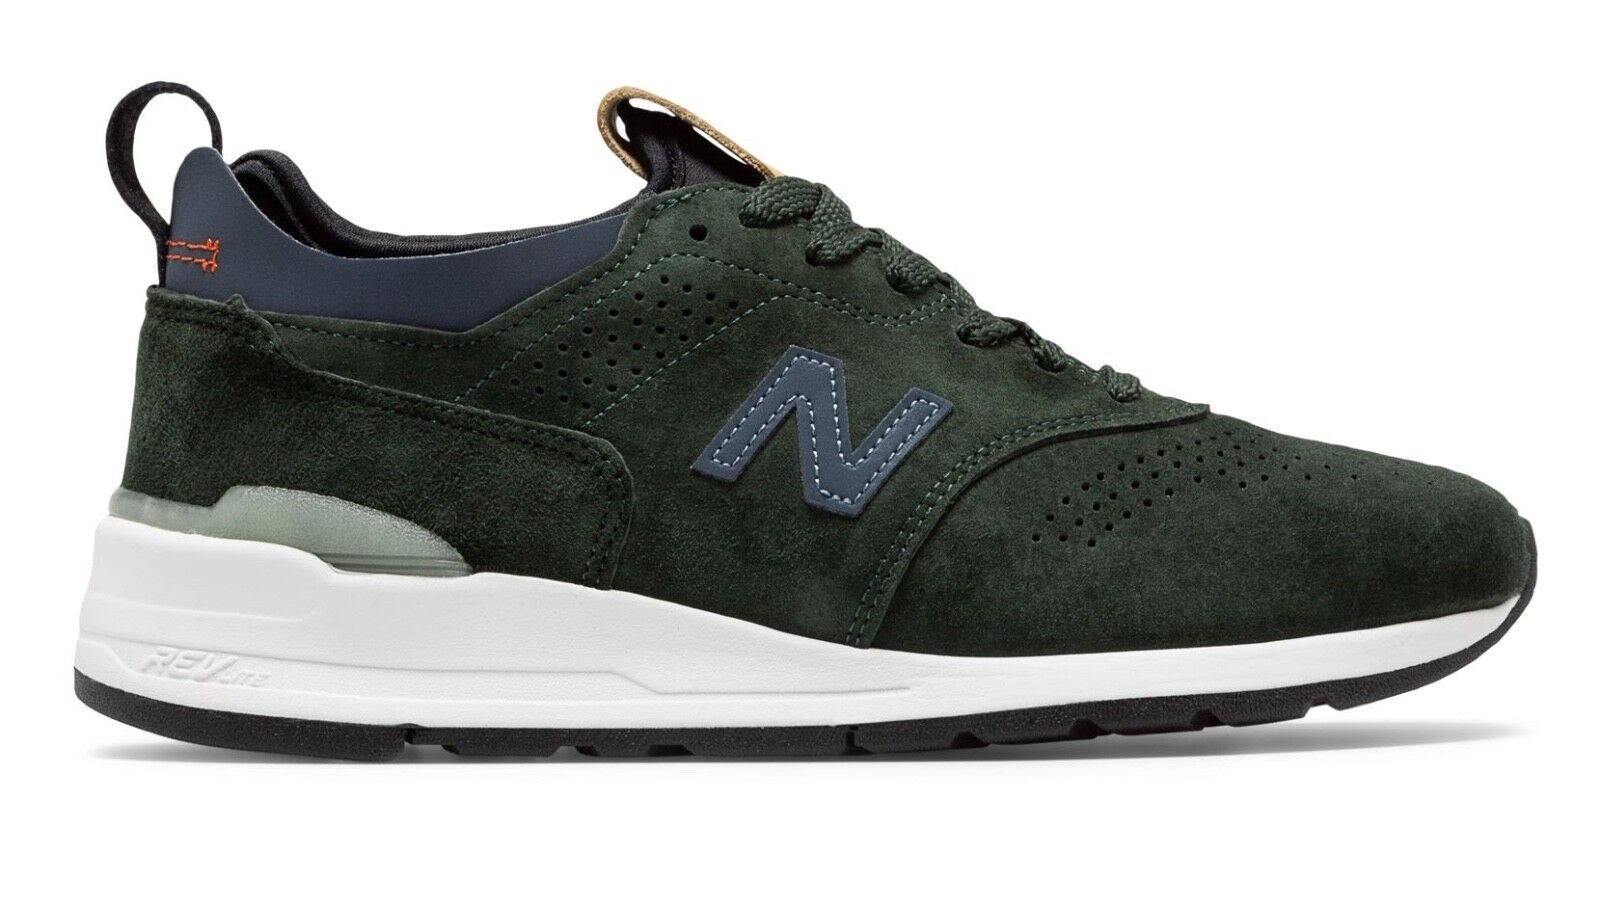 New Balance M997 M997HB2 Green Suede Made In USA Men SZ 8 - 13